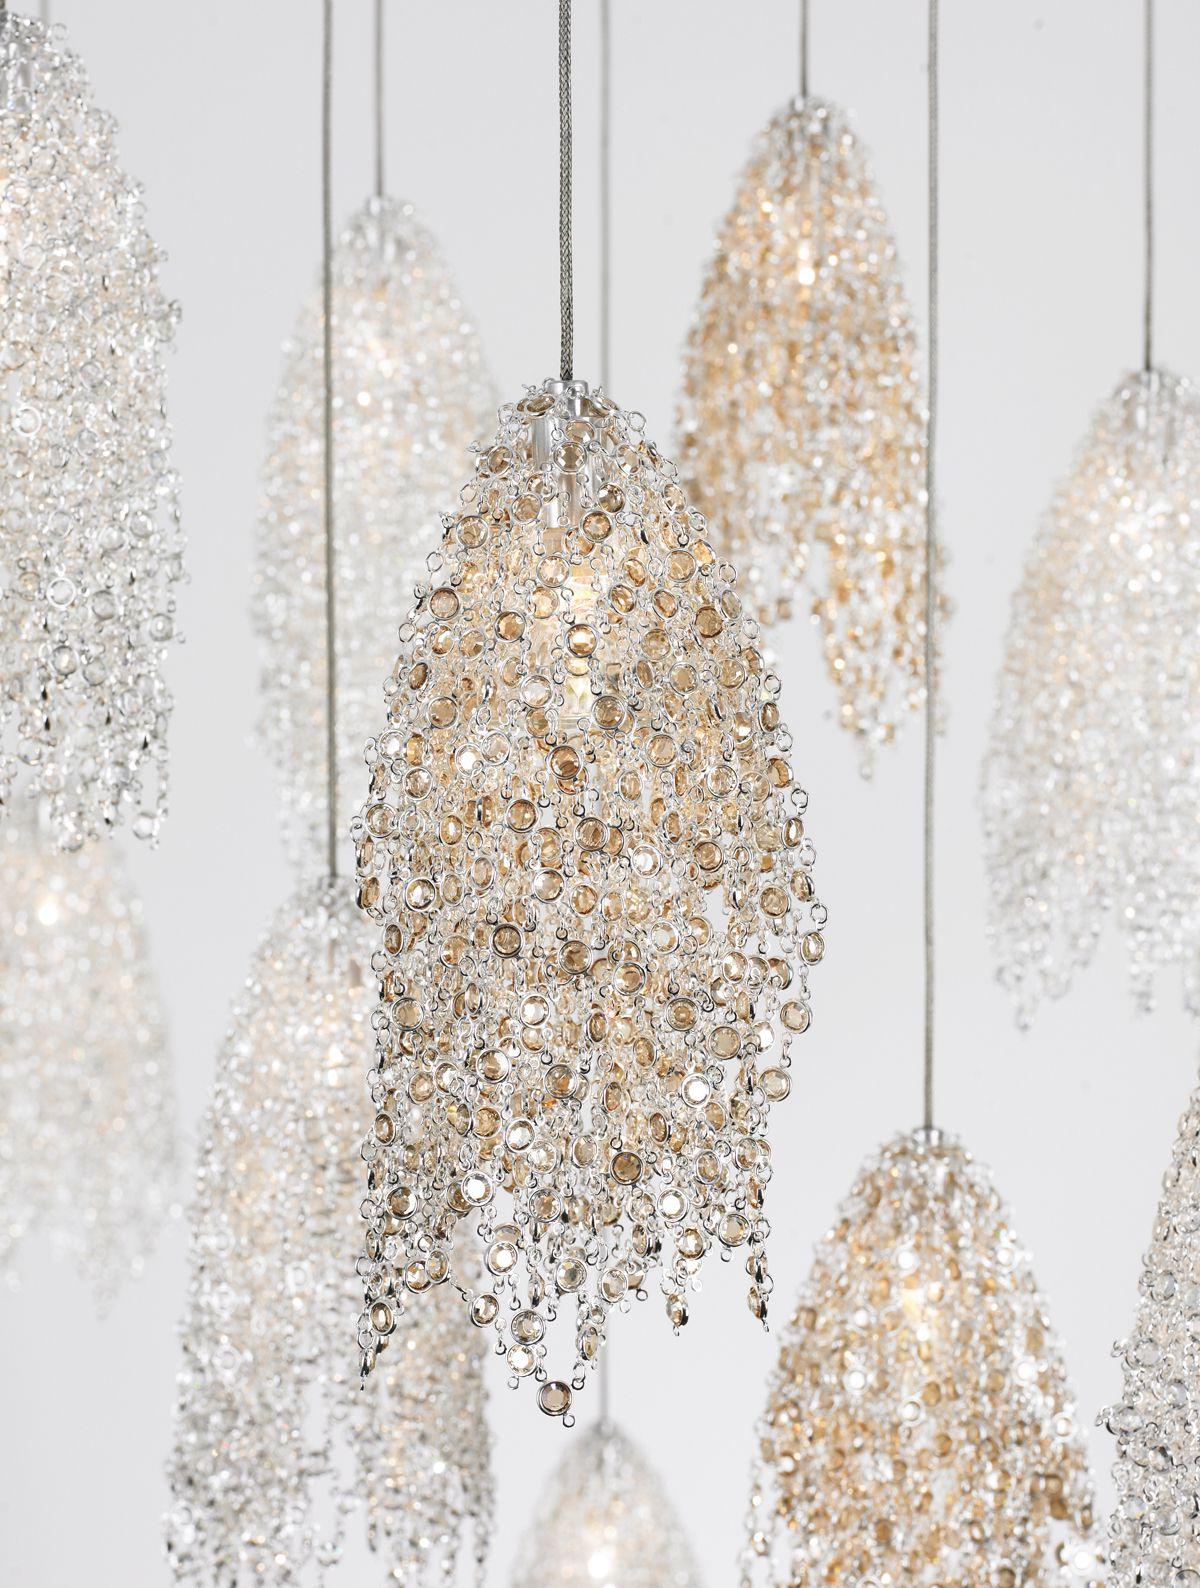 2020 Love These! I'm Using 5 Of Them Over My Dining Room Table With Regard To Vincent 5 Light Drum Chandeliers (View 2 of 25)